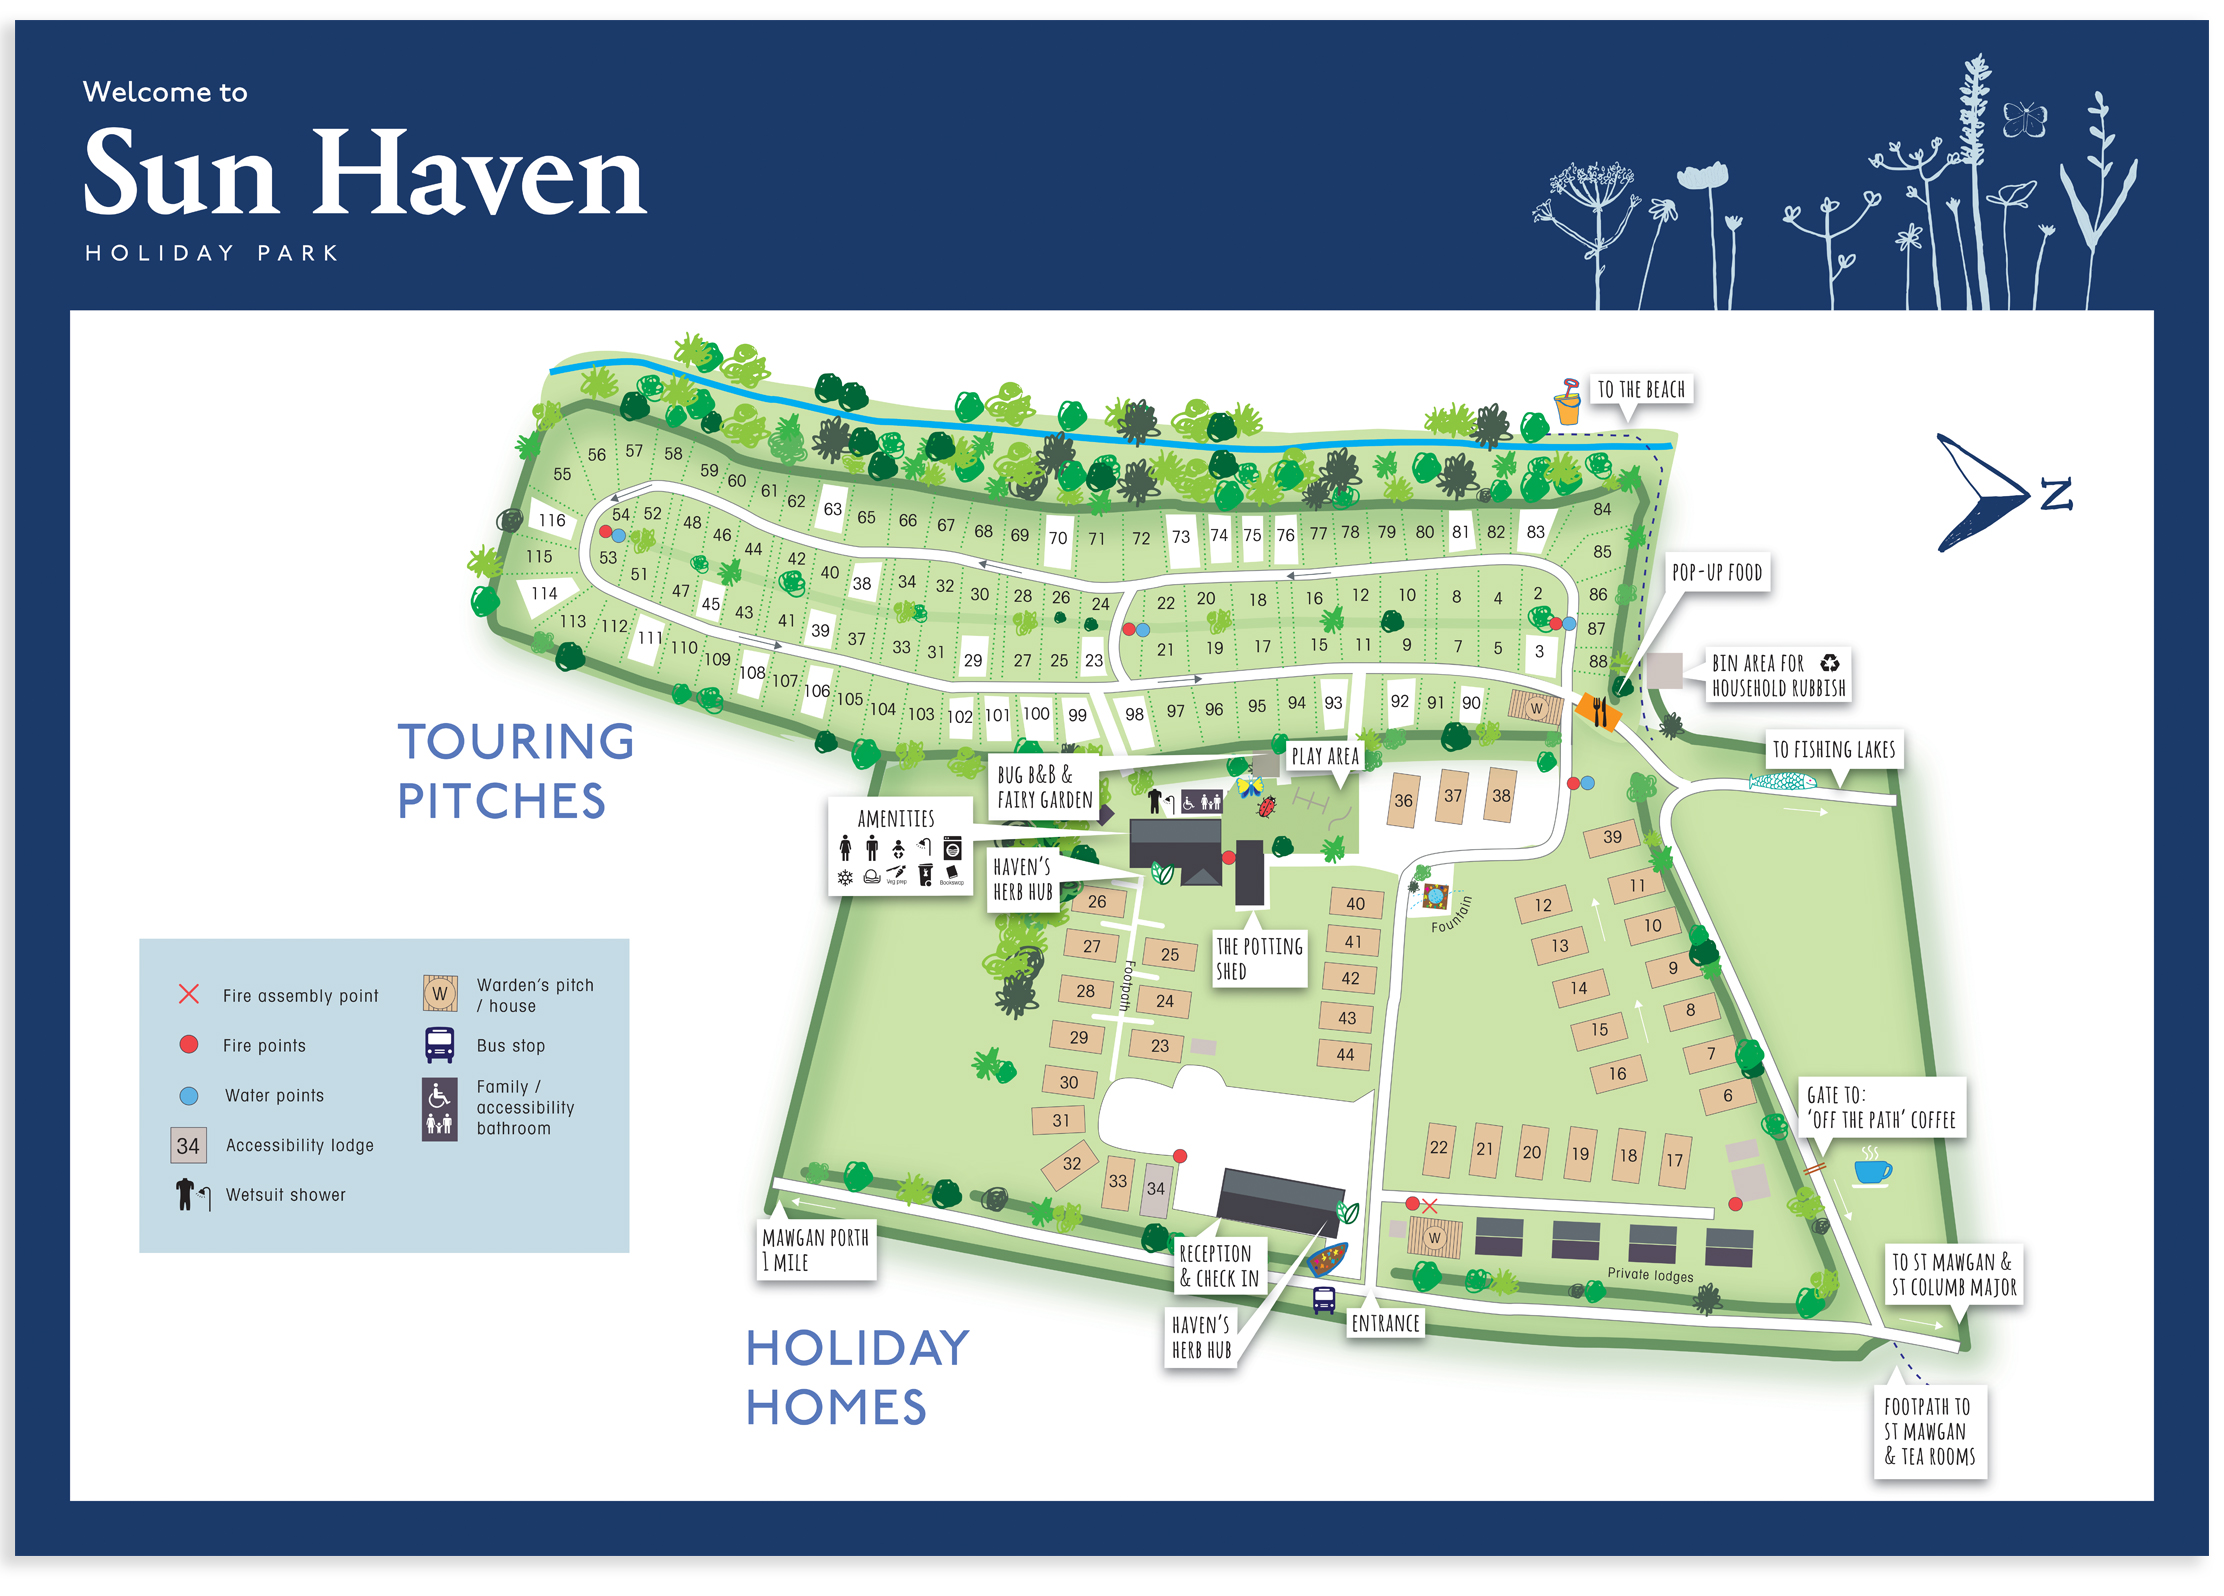 Sun Haven Holiday Park map sign